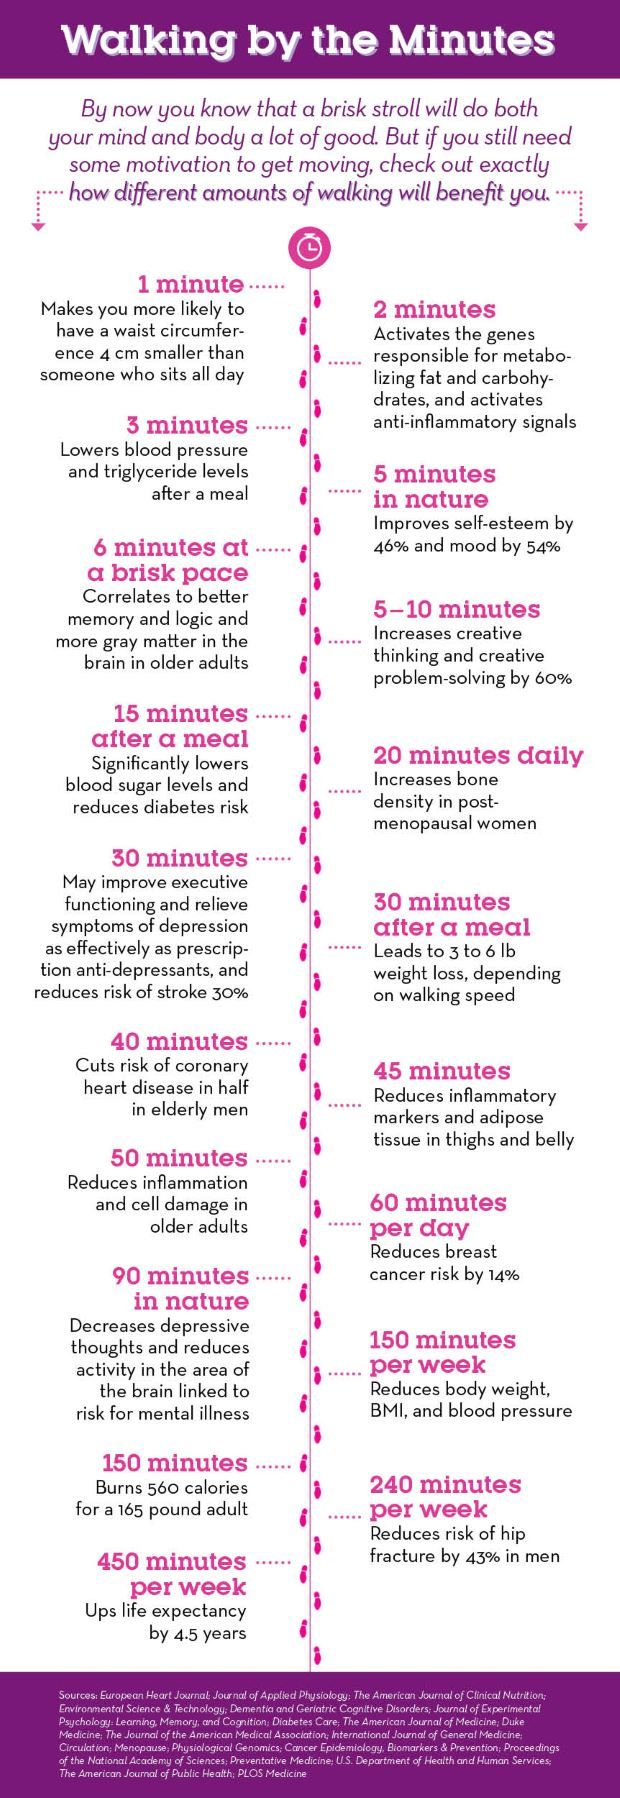 The Incredible Way Just One Minute Of Walking Benefits Your Weight  http://www.prevention.com/fitness/the-incredible-way-just-one-minute-of-walking-benefits-your-weight